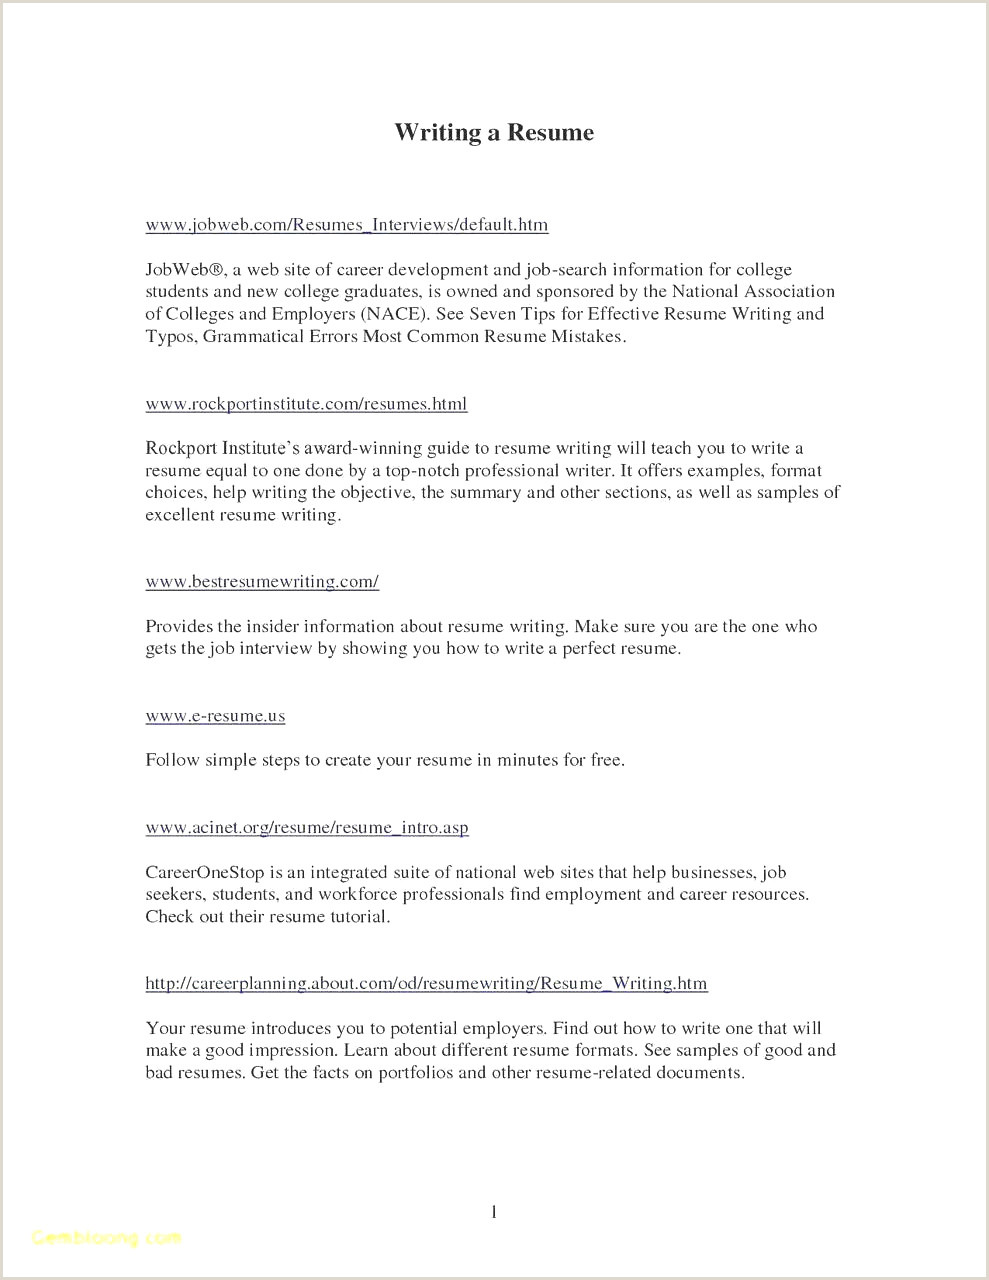 Fresher Resume Format For Job Interview Best Cv De Base Objective A Resume Xenakisworld